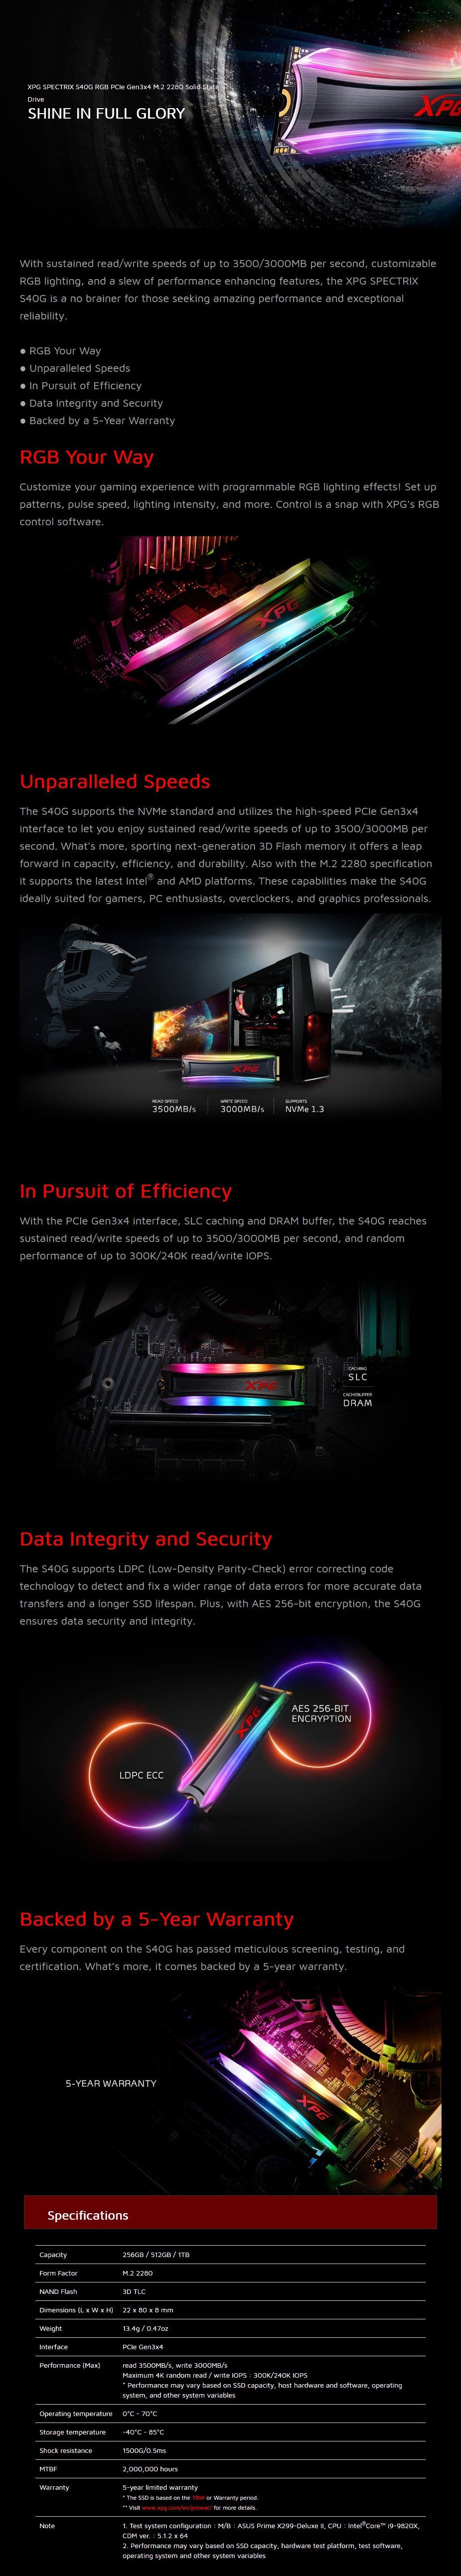 Adata XPG Spectrix S40G 512GB RGB M.2 NVMe SSD AS40G-512GT-C - Overview 1